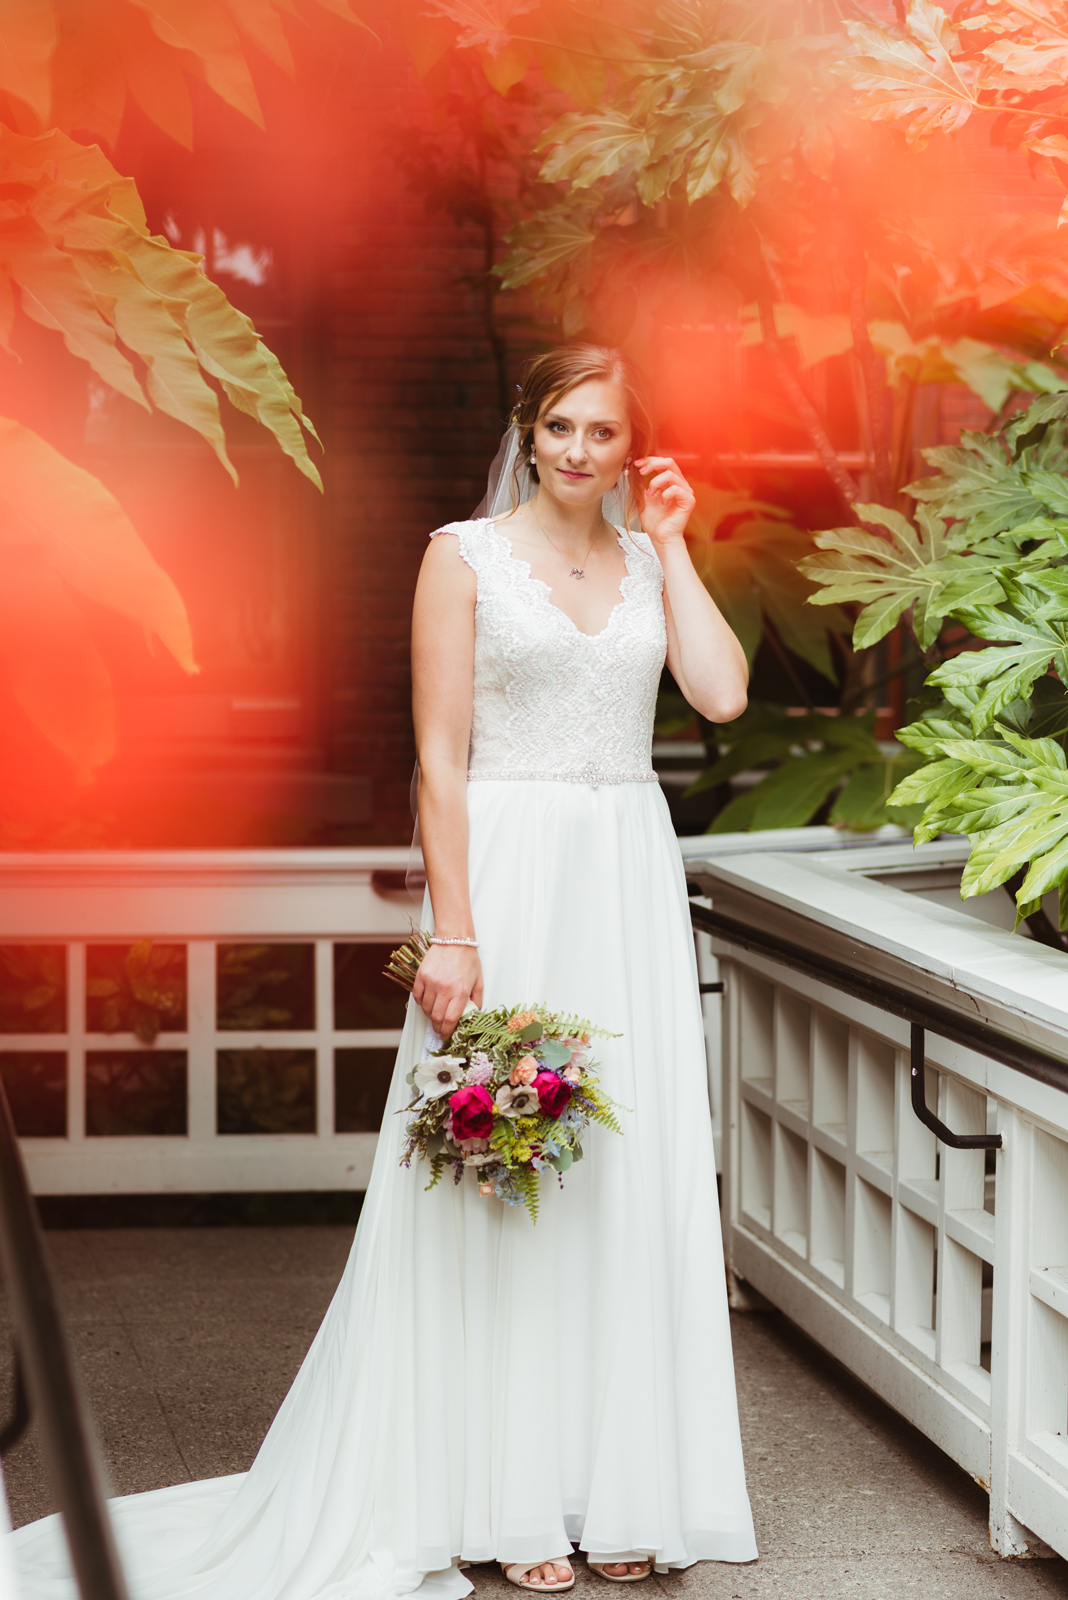 Beautiful bridal portrait with flowers